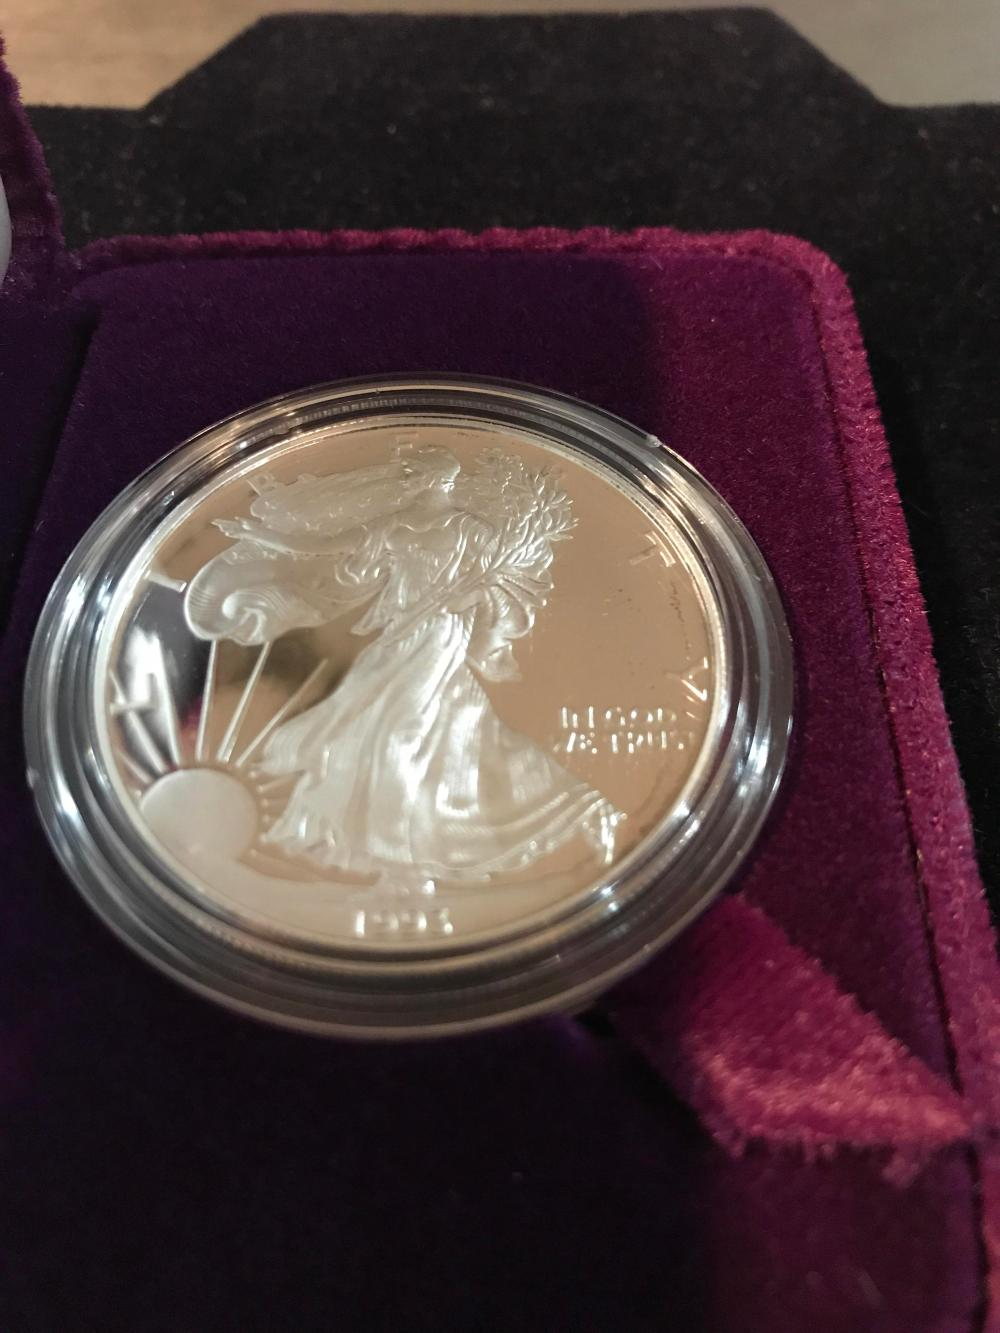 Lot 154: 1993 silver American eagle one dollar coin proof